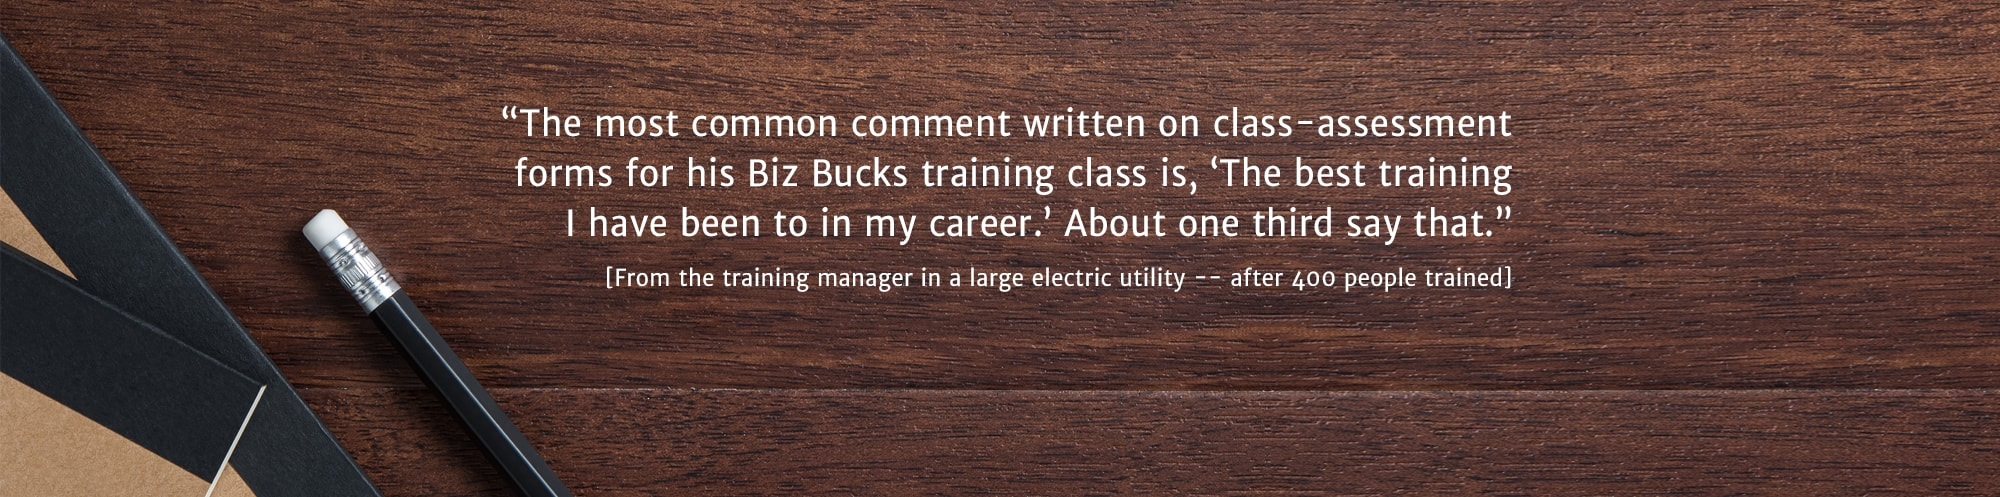 The most common comment written on class-assessment forms for his Biz Bucks training class is The best training that I have been to in my career. About one third say that. - From the training manager in a large electric facility - after 400 people tr